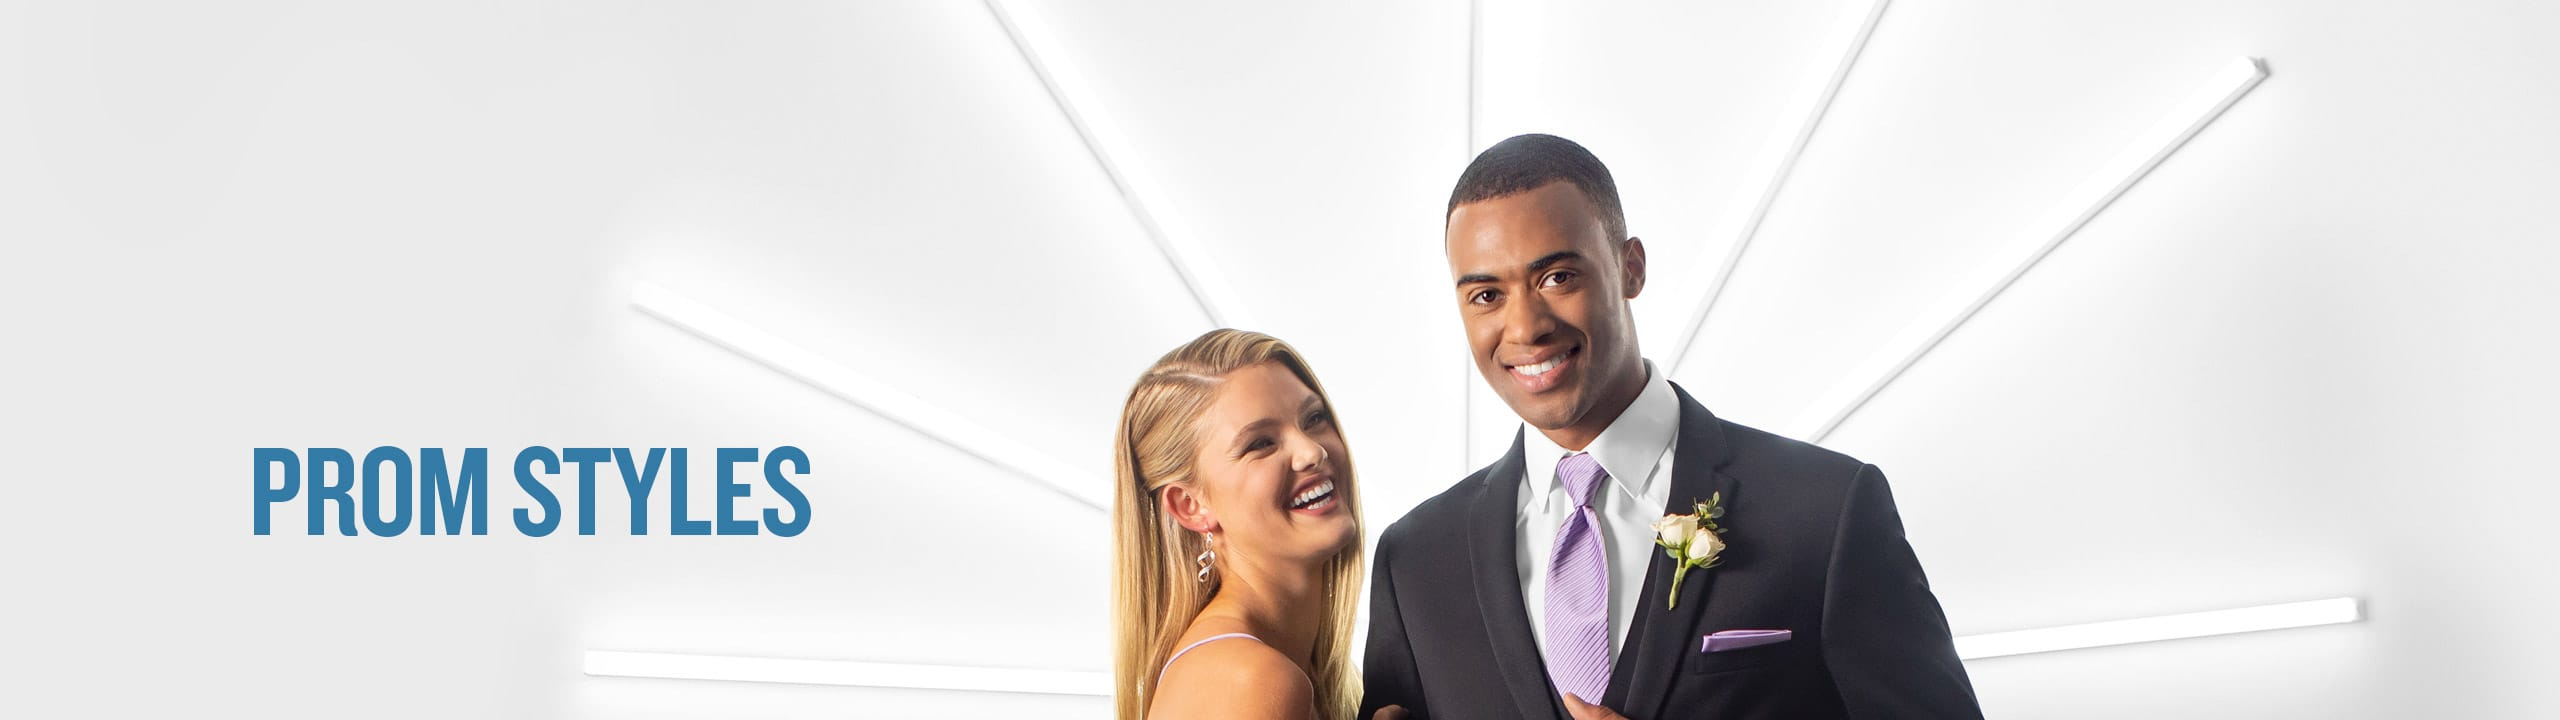 Prom Tuxedos & Suit Rental | Jim's Formal Wear